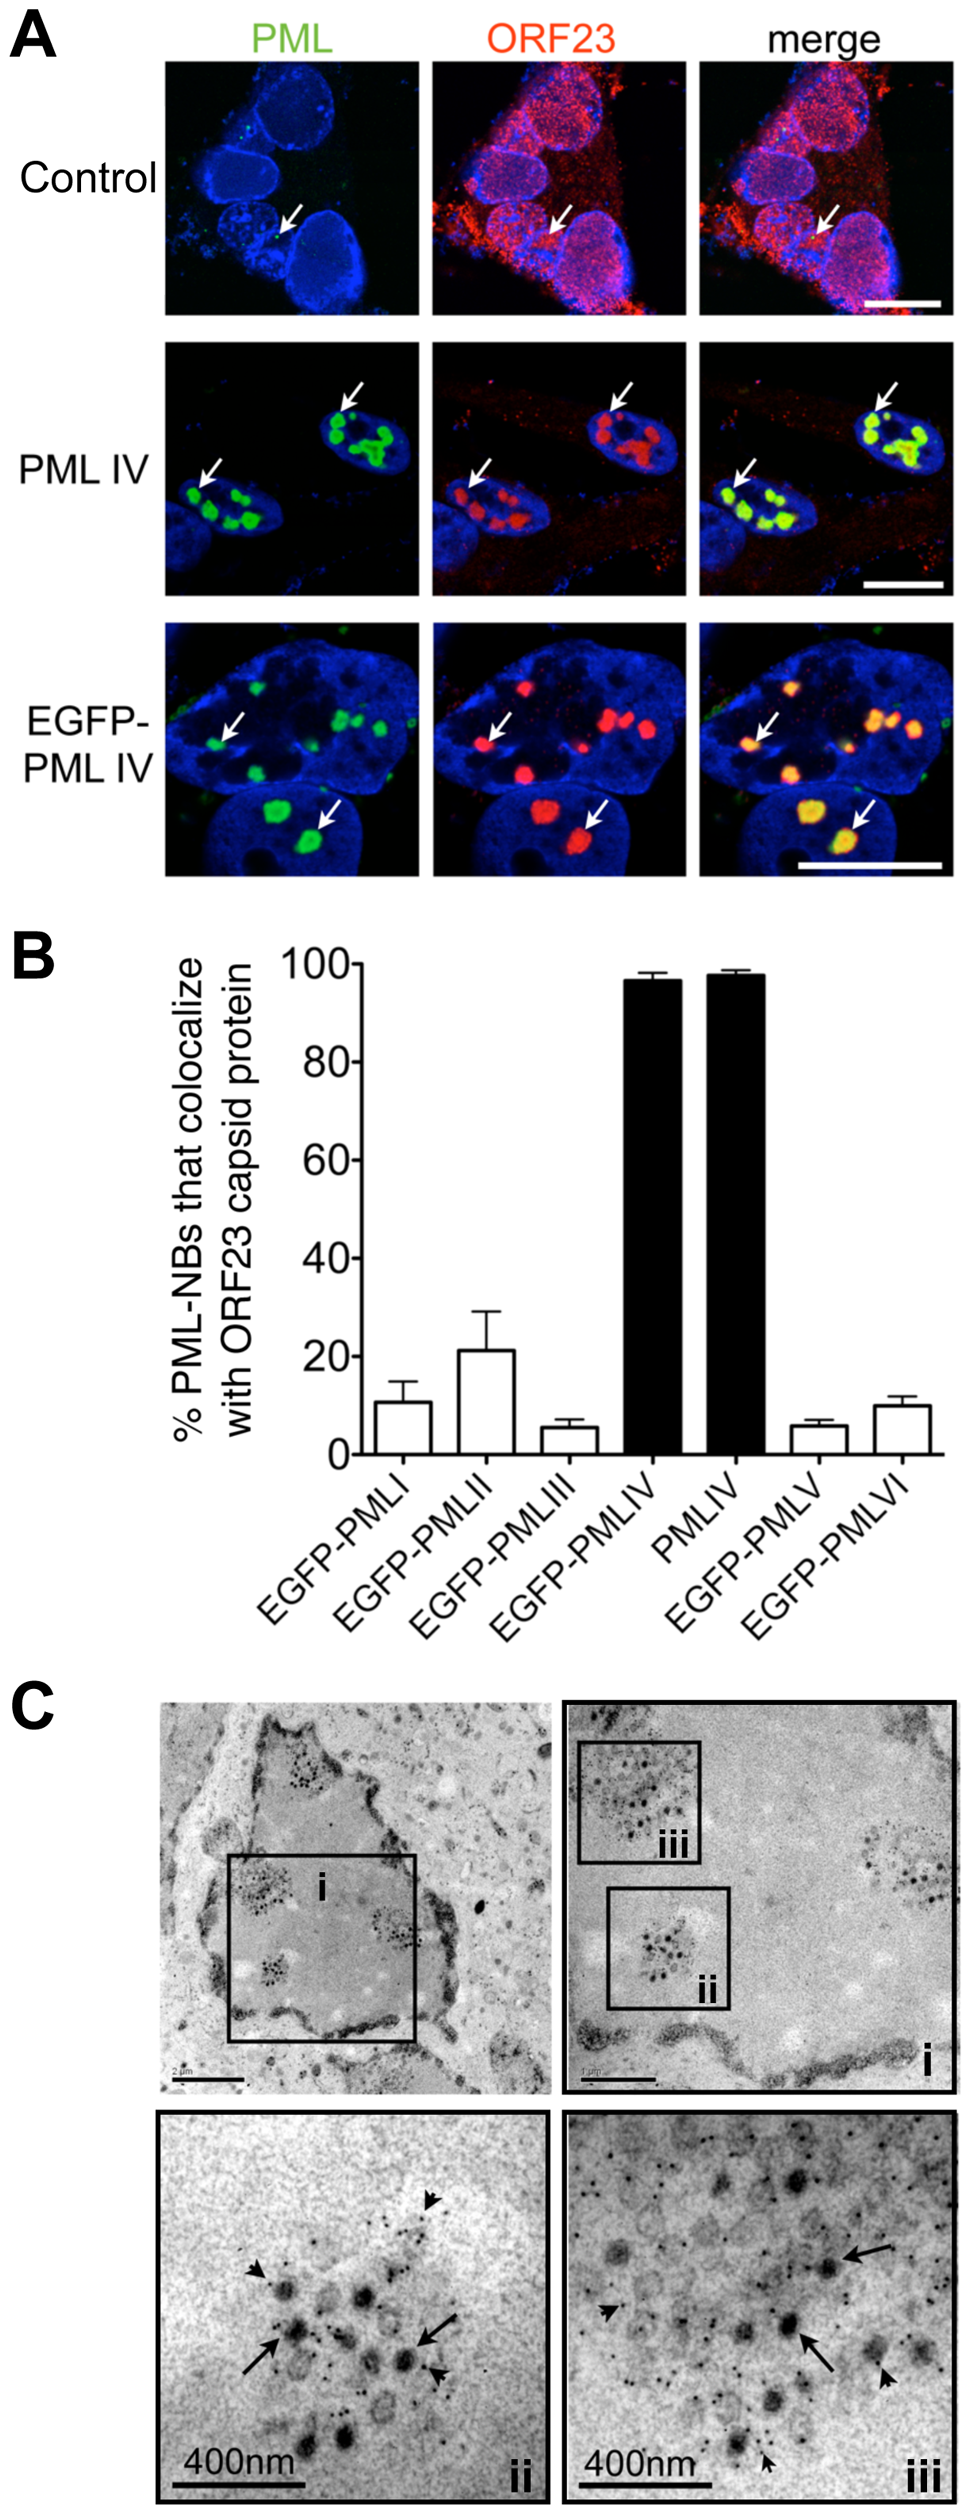 PML IV promotes the sequestration of VZV nucleocapsids within PML cages.